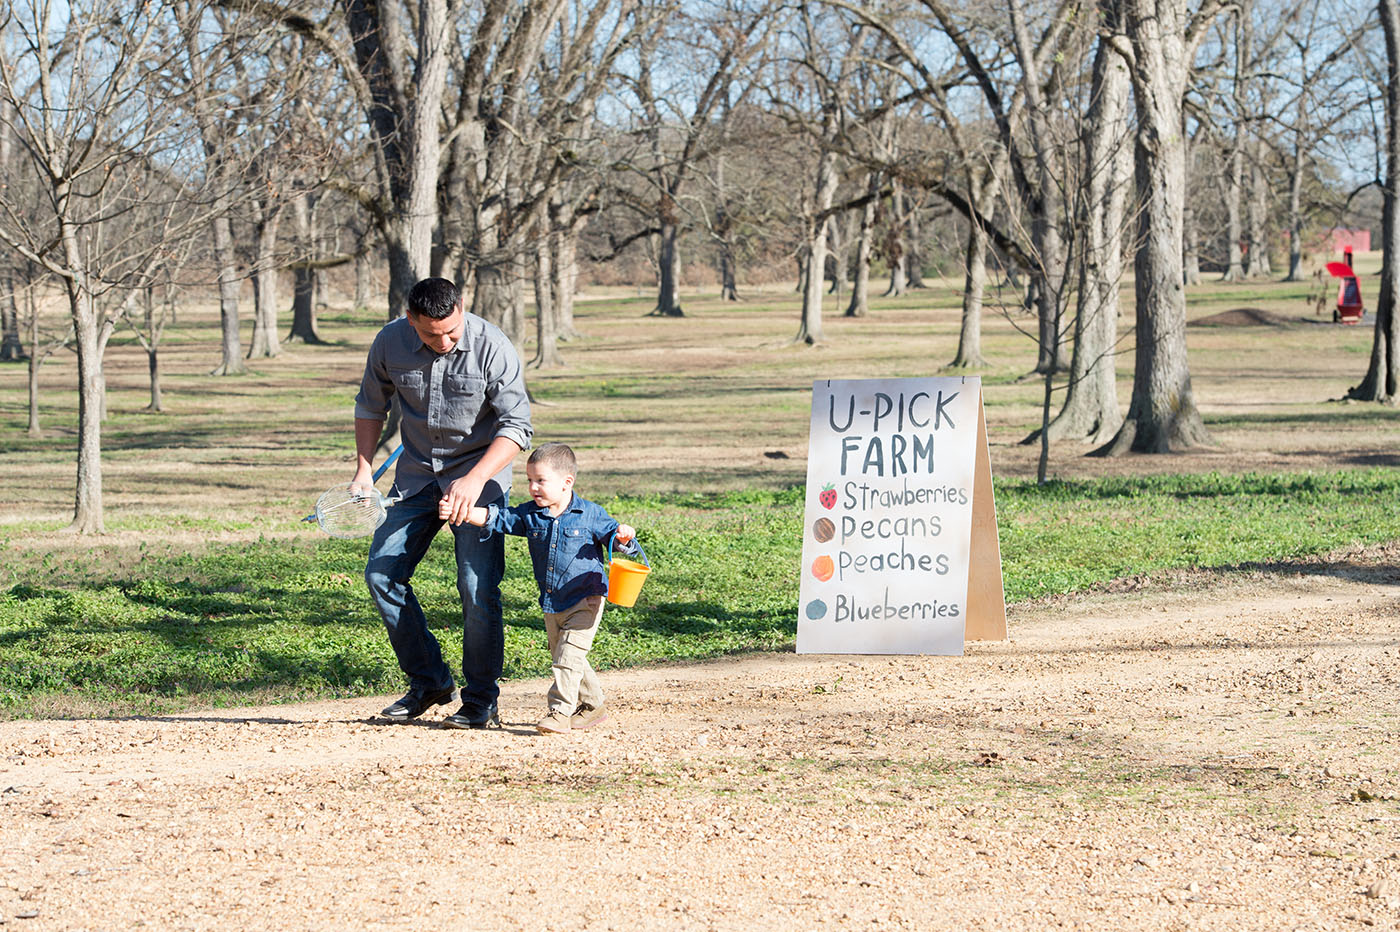 A man holding the hand of a small child who is carrying a pail among pecan trees. A U-Pick Farm sign is offering strawberries,  pecans, peaches, and blueberries.